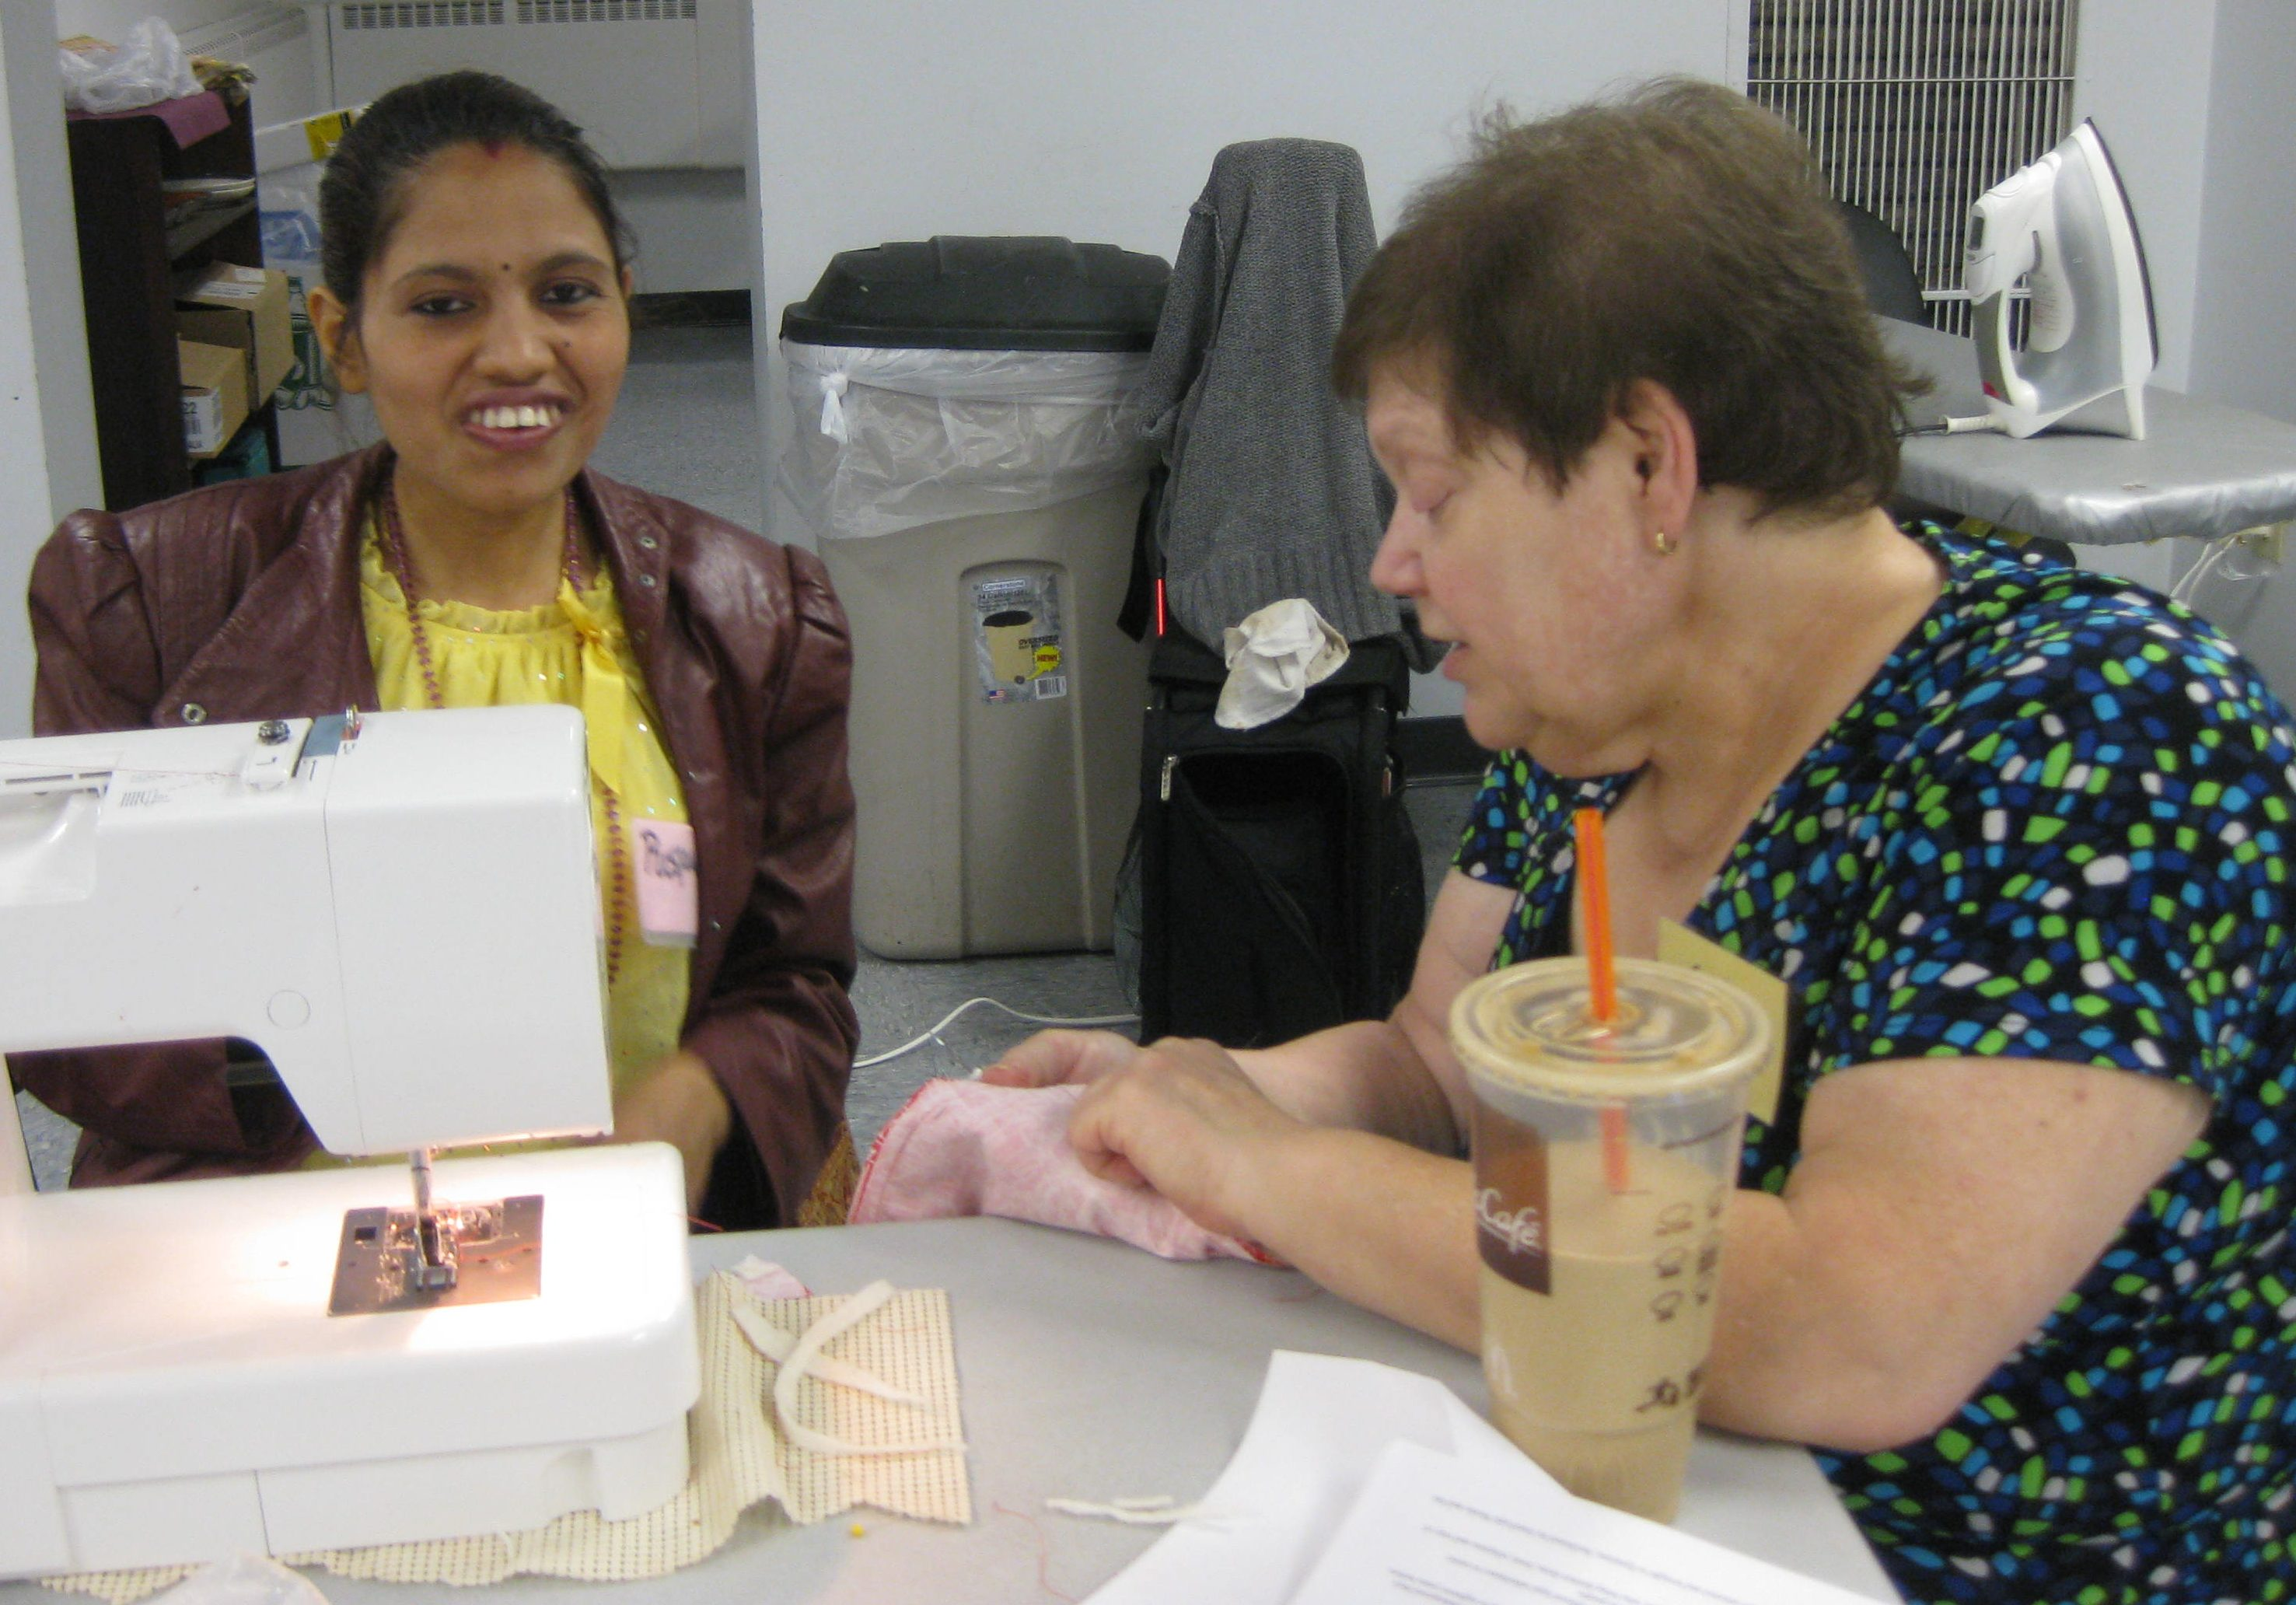 Sewing class - consulting on a project